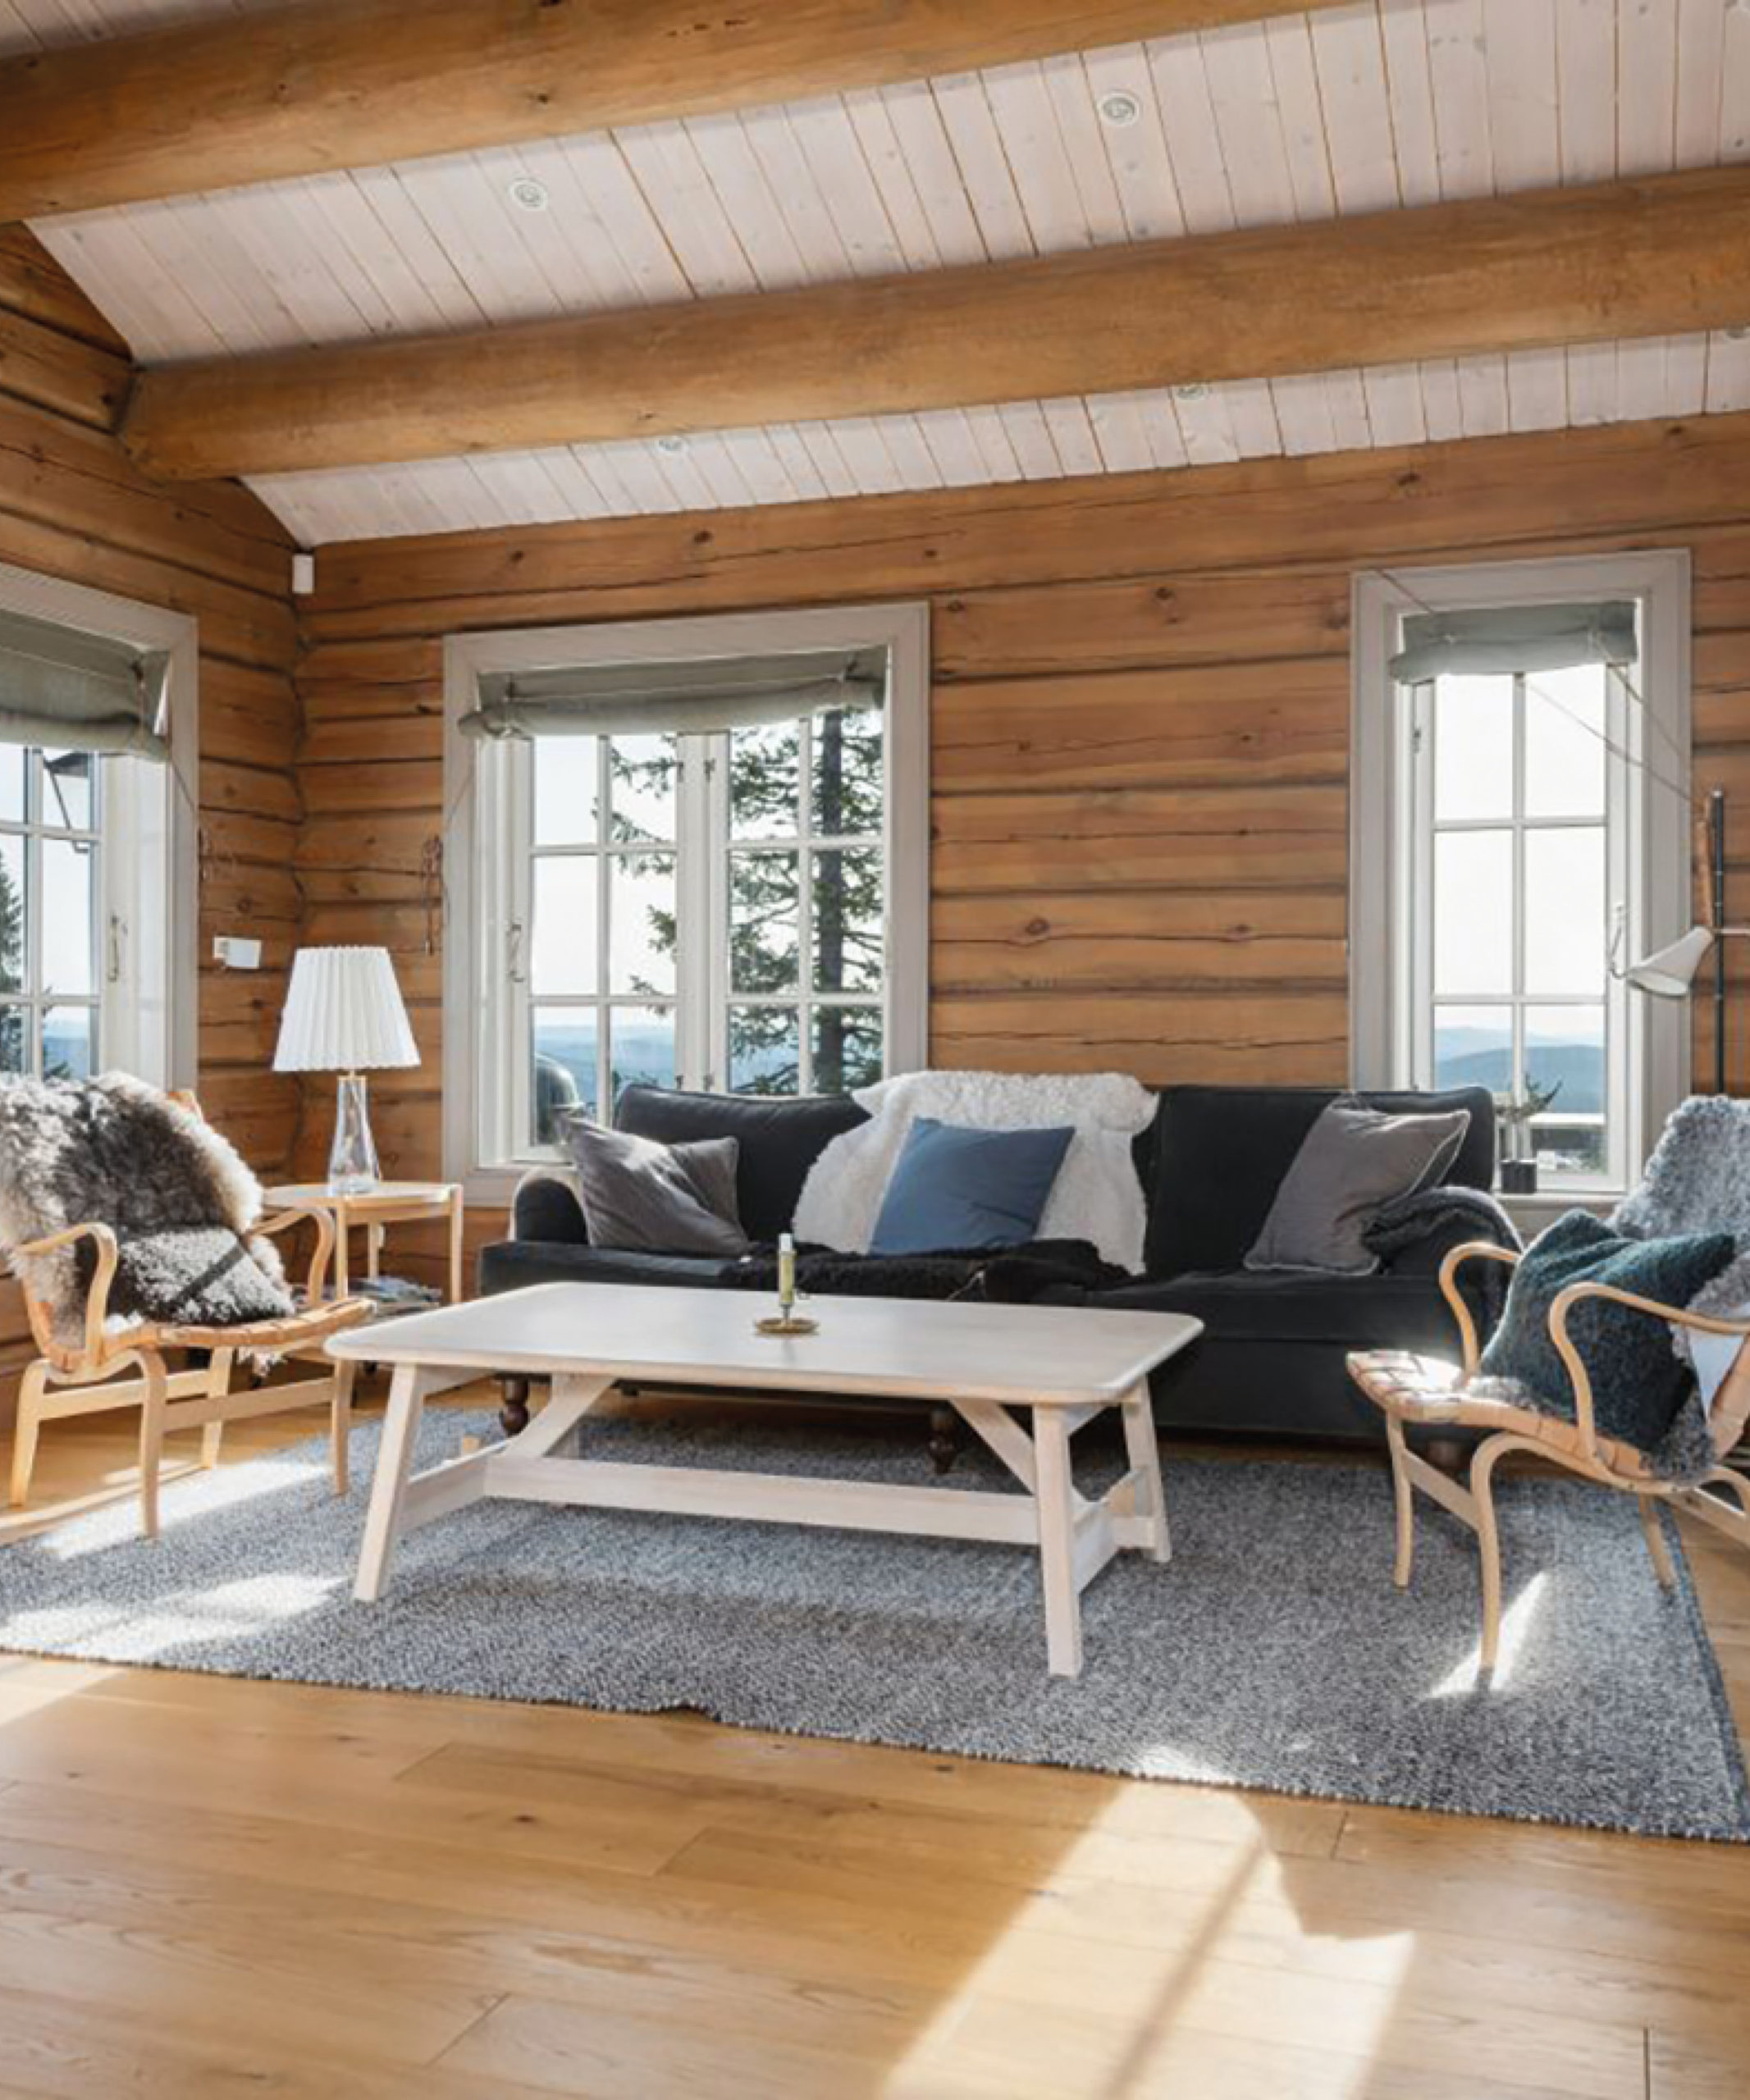 Ugla 978 - cabin rental in Trysil - large cabins